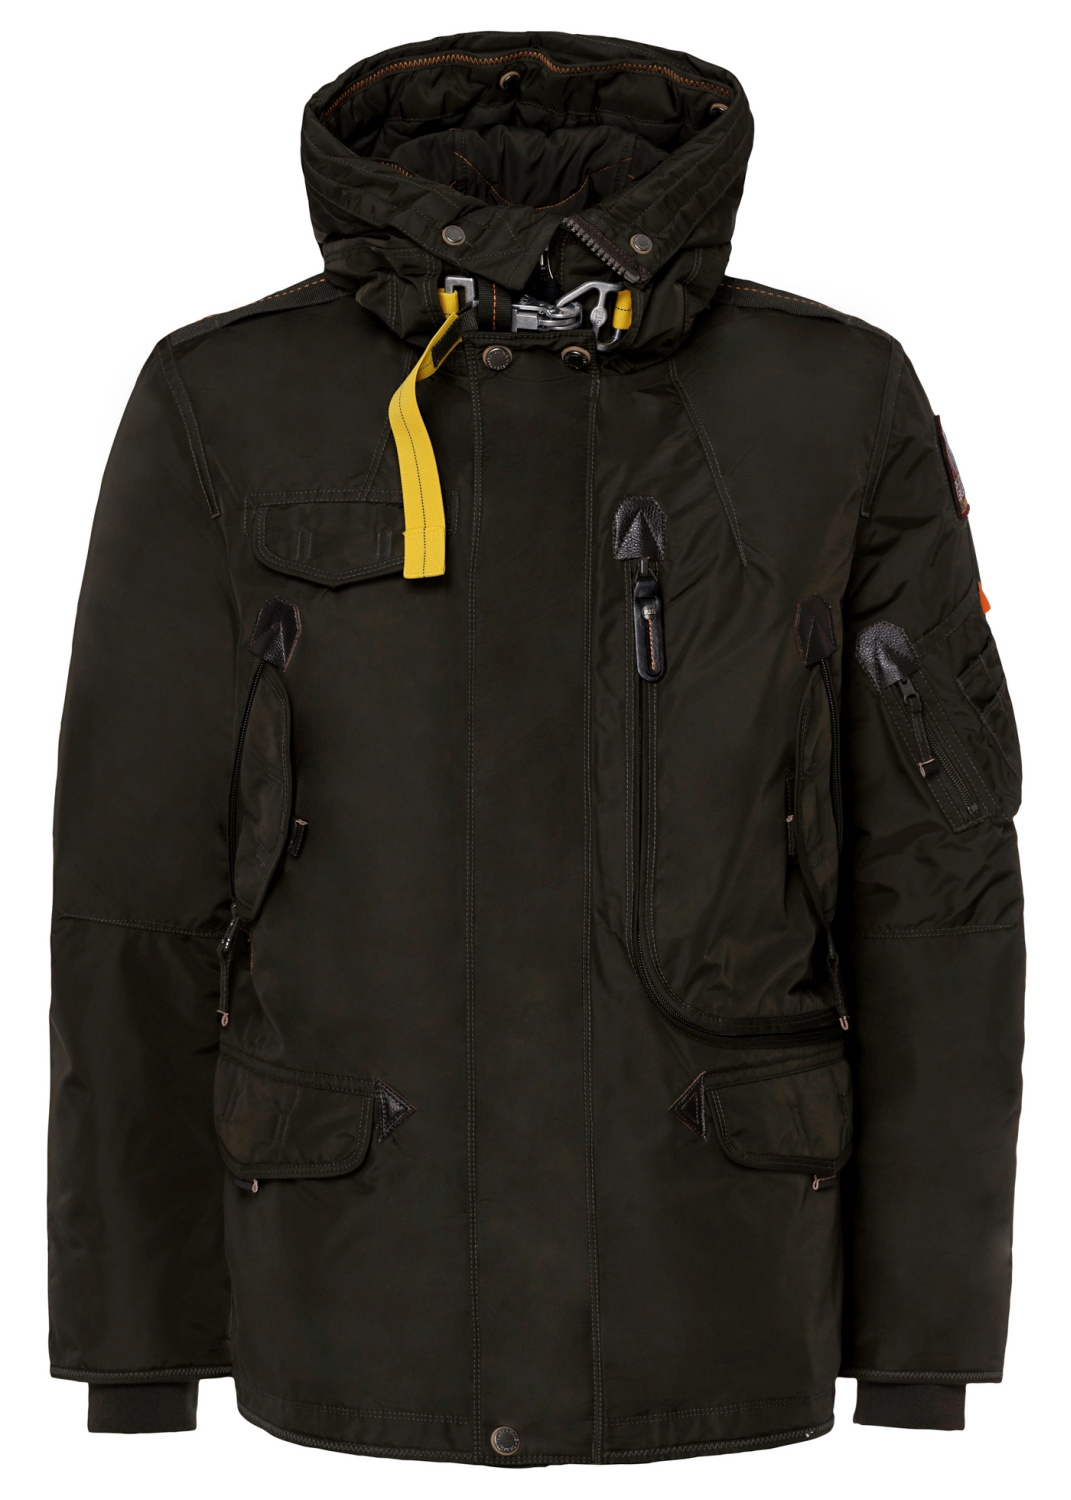 RIGHT HAND BASE - Fieldjacket image number 0